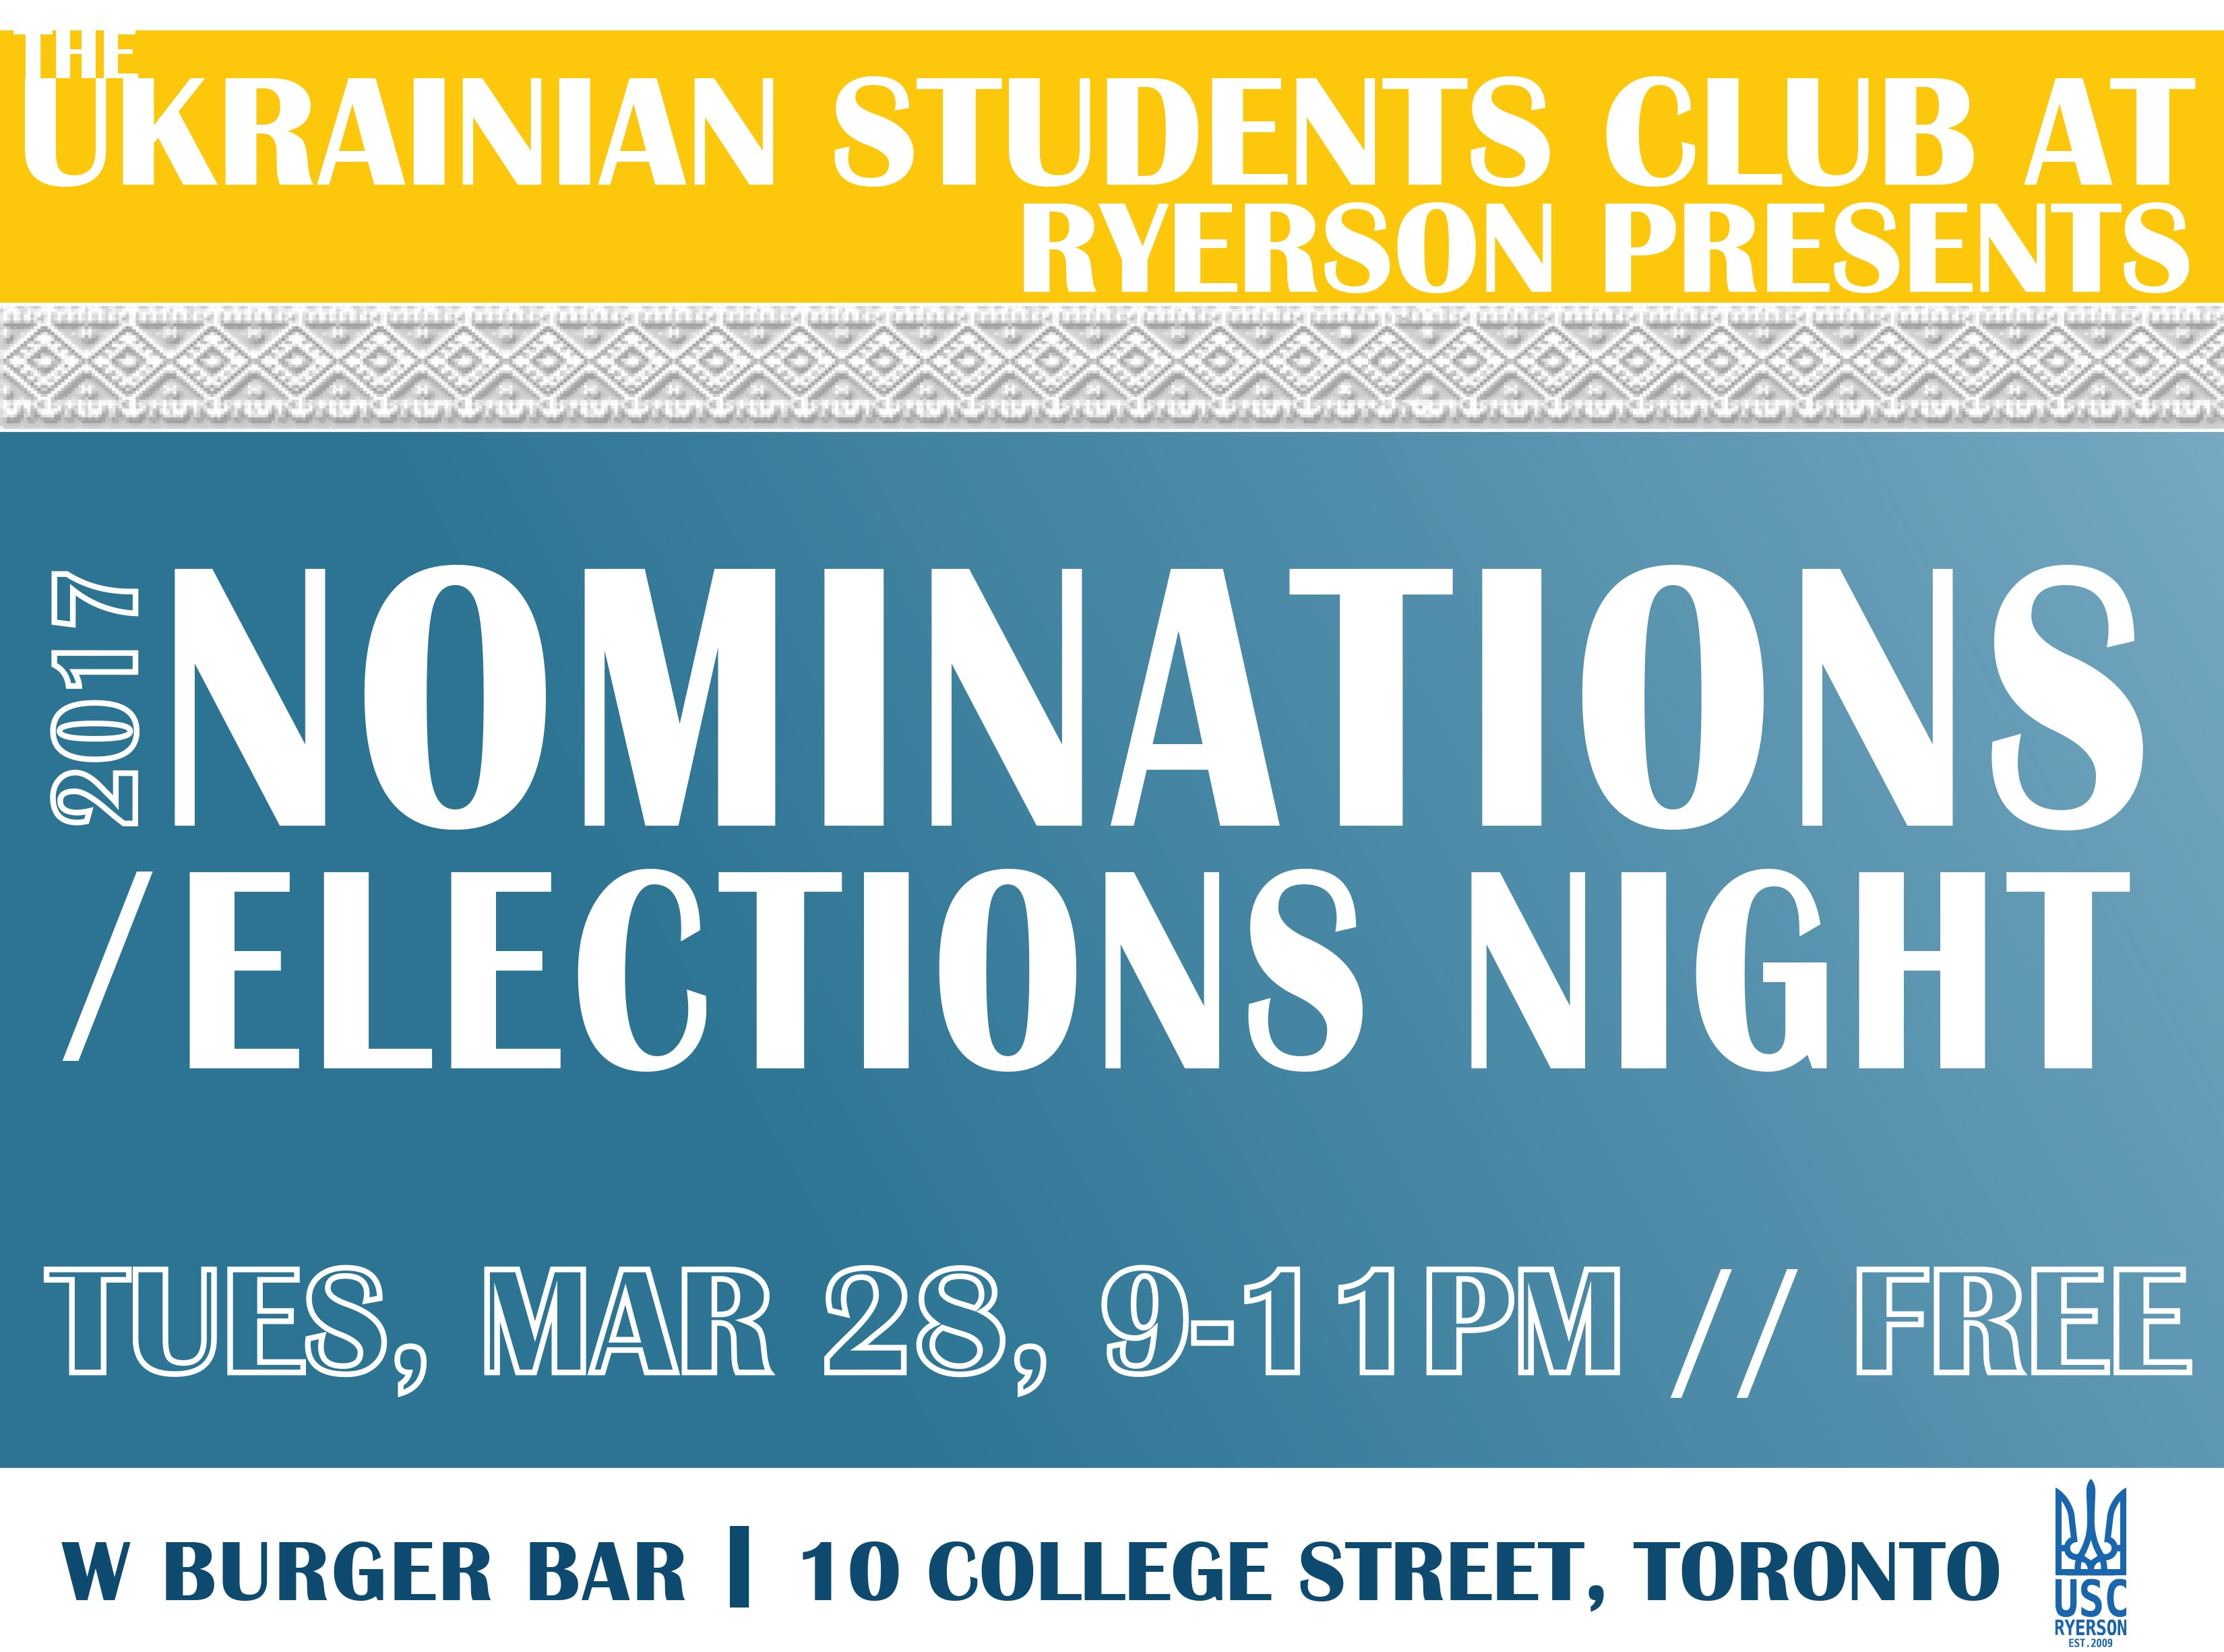 https://sites.google.com/site/uscryerson/events/elections-2017